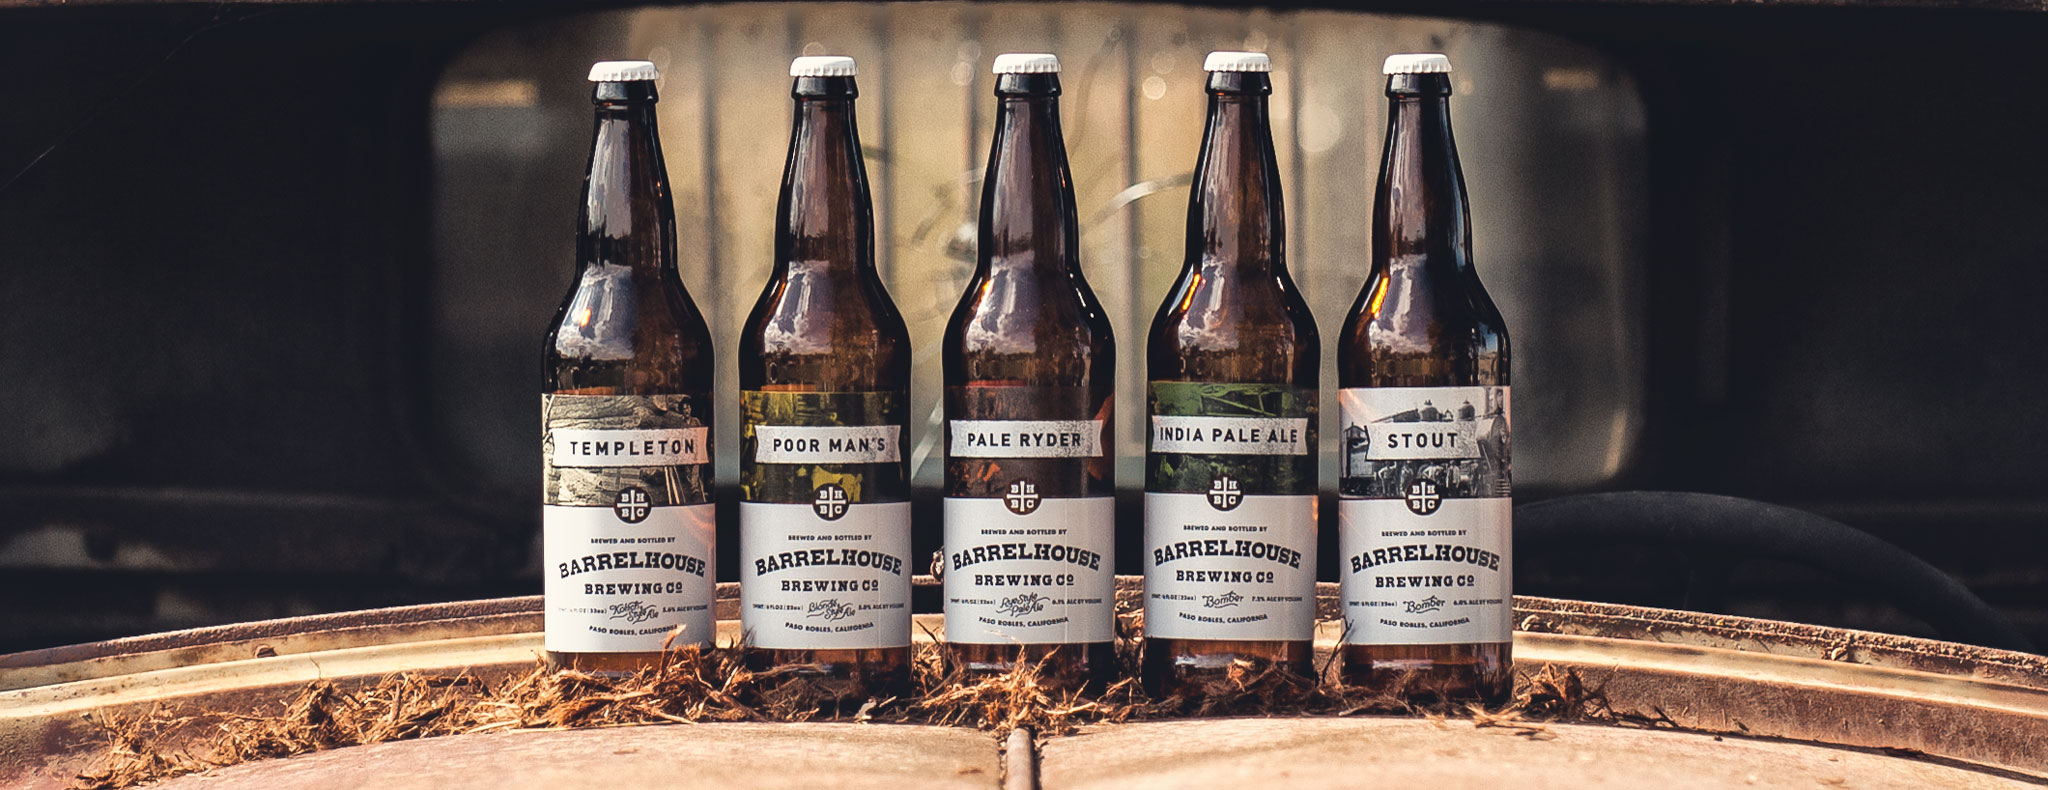 BarrelHouse Brewing Portfolio Bottles